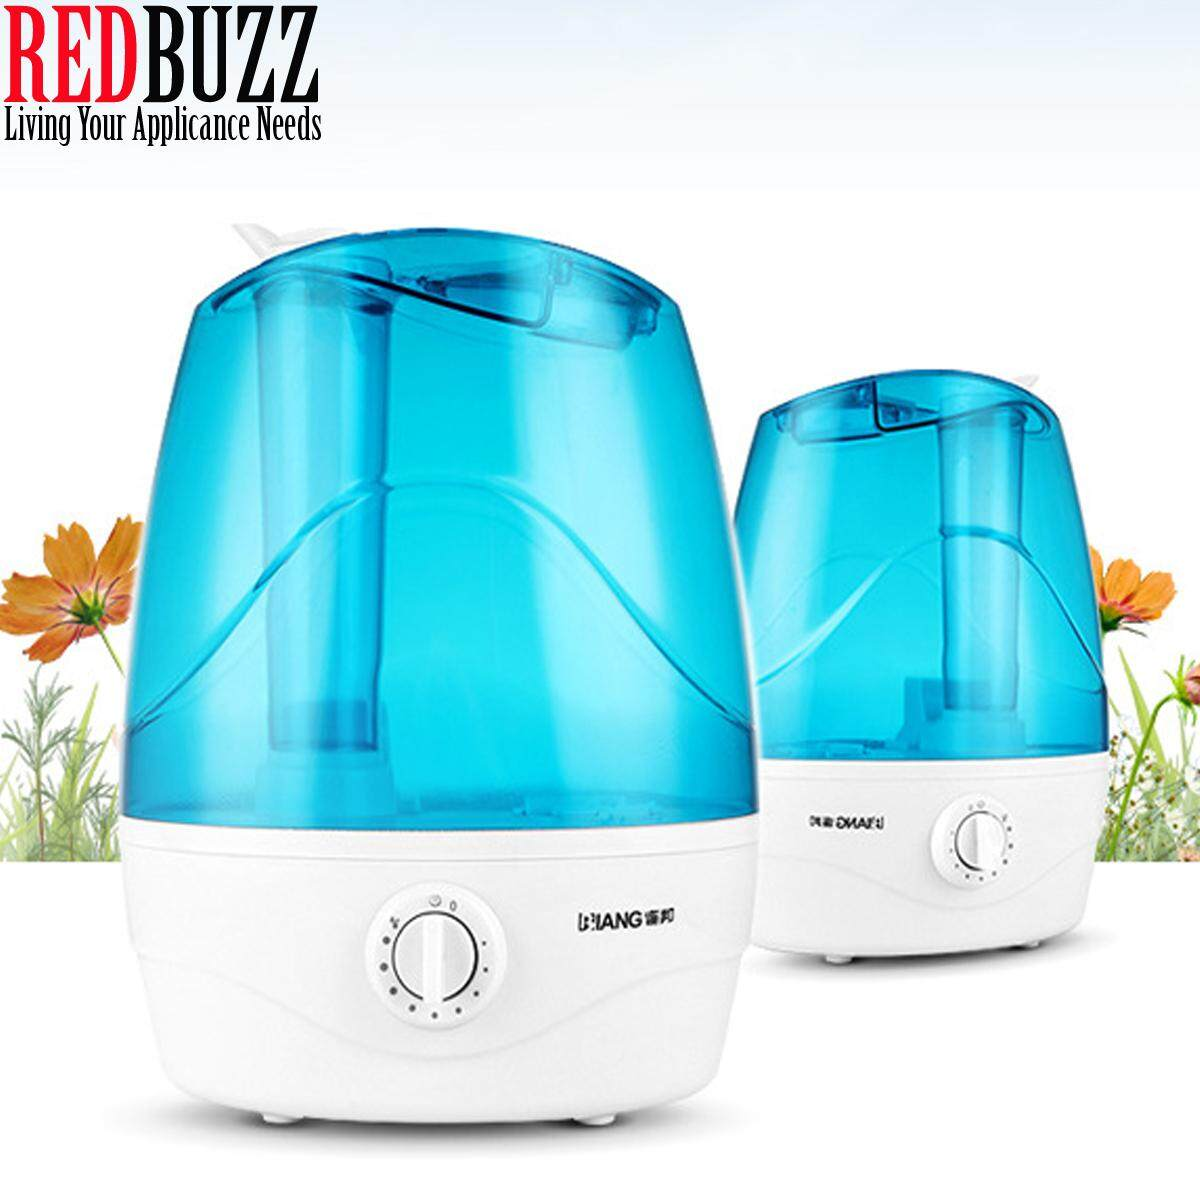 REDBUZZ Biang 3.3L Large Ultrasonic Humidifier Air Diffuser Cool Mist Purifier